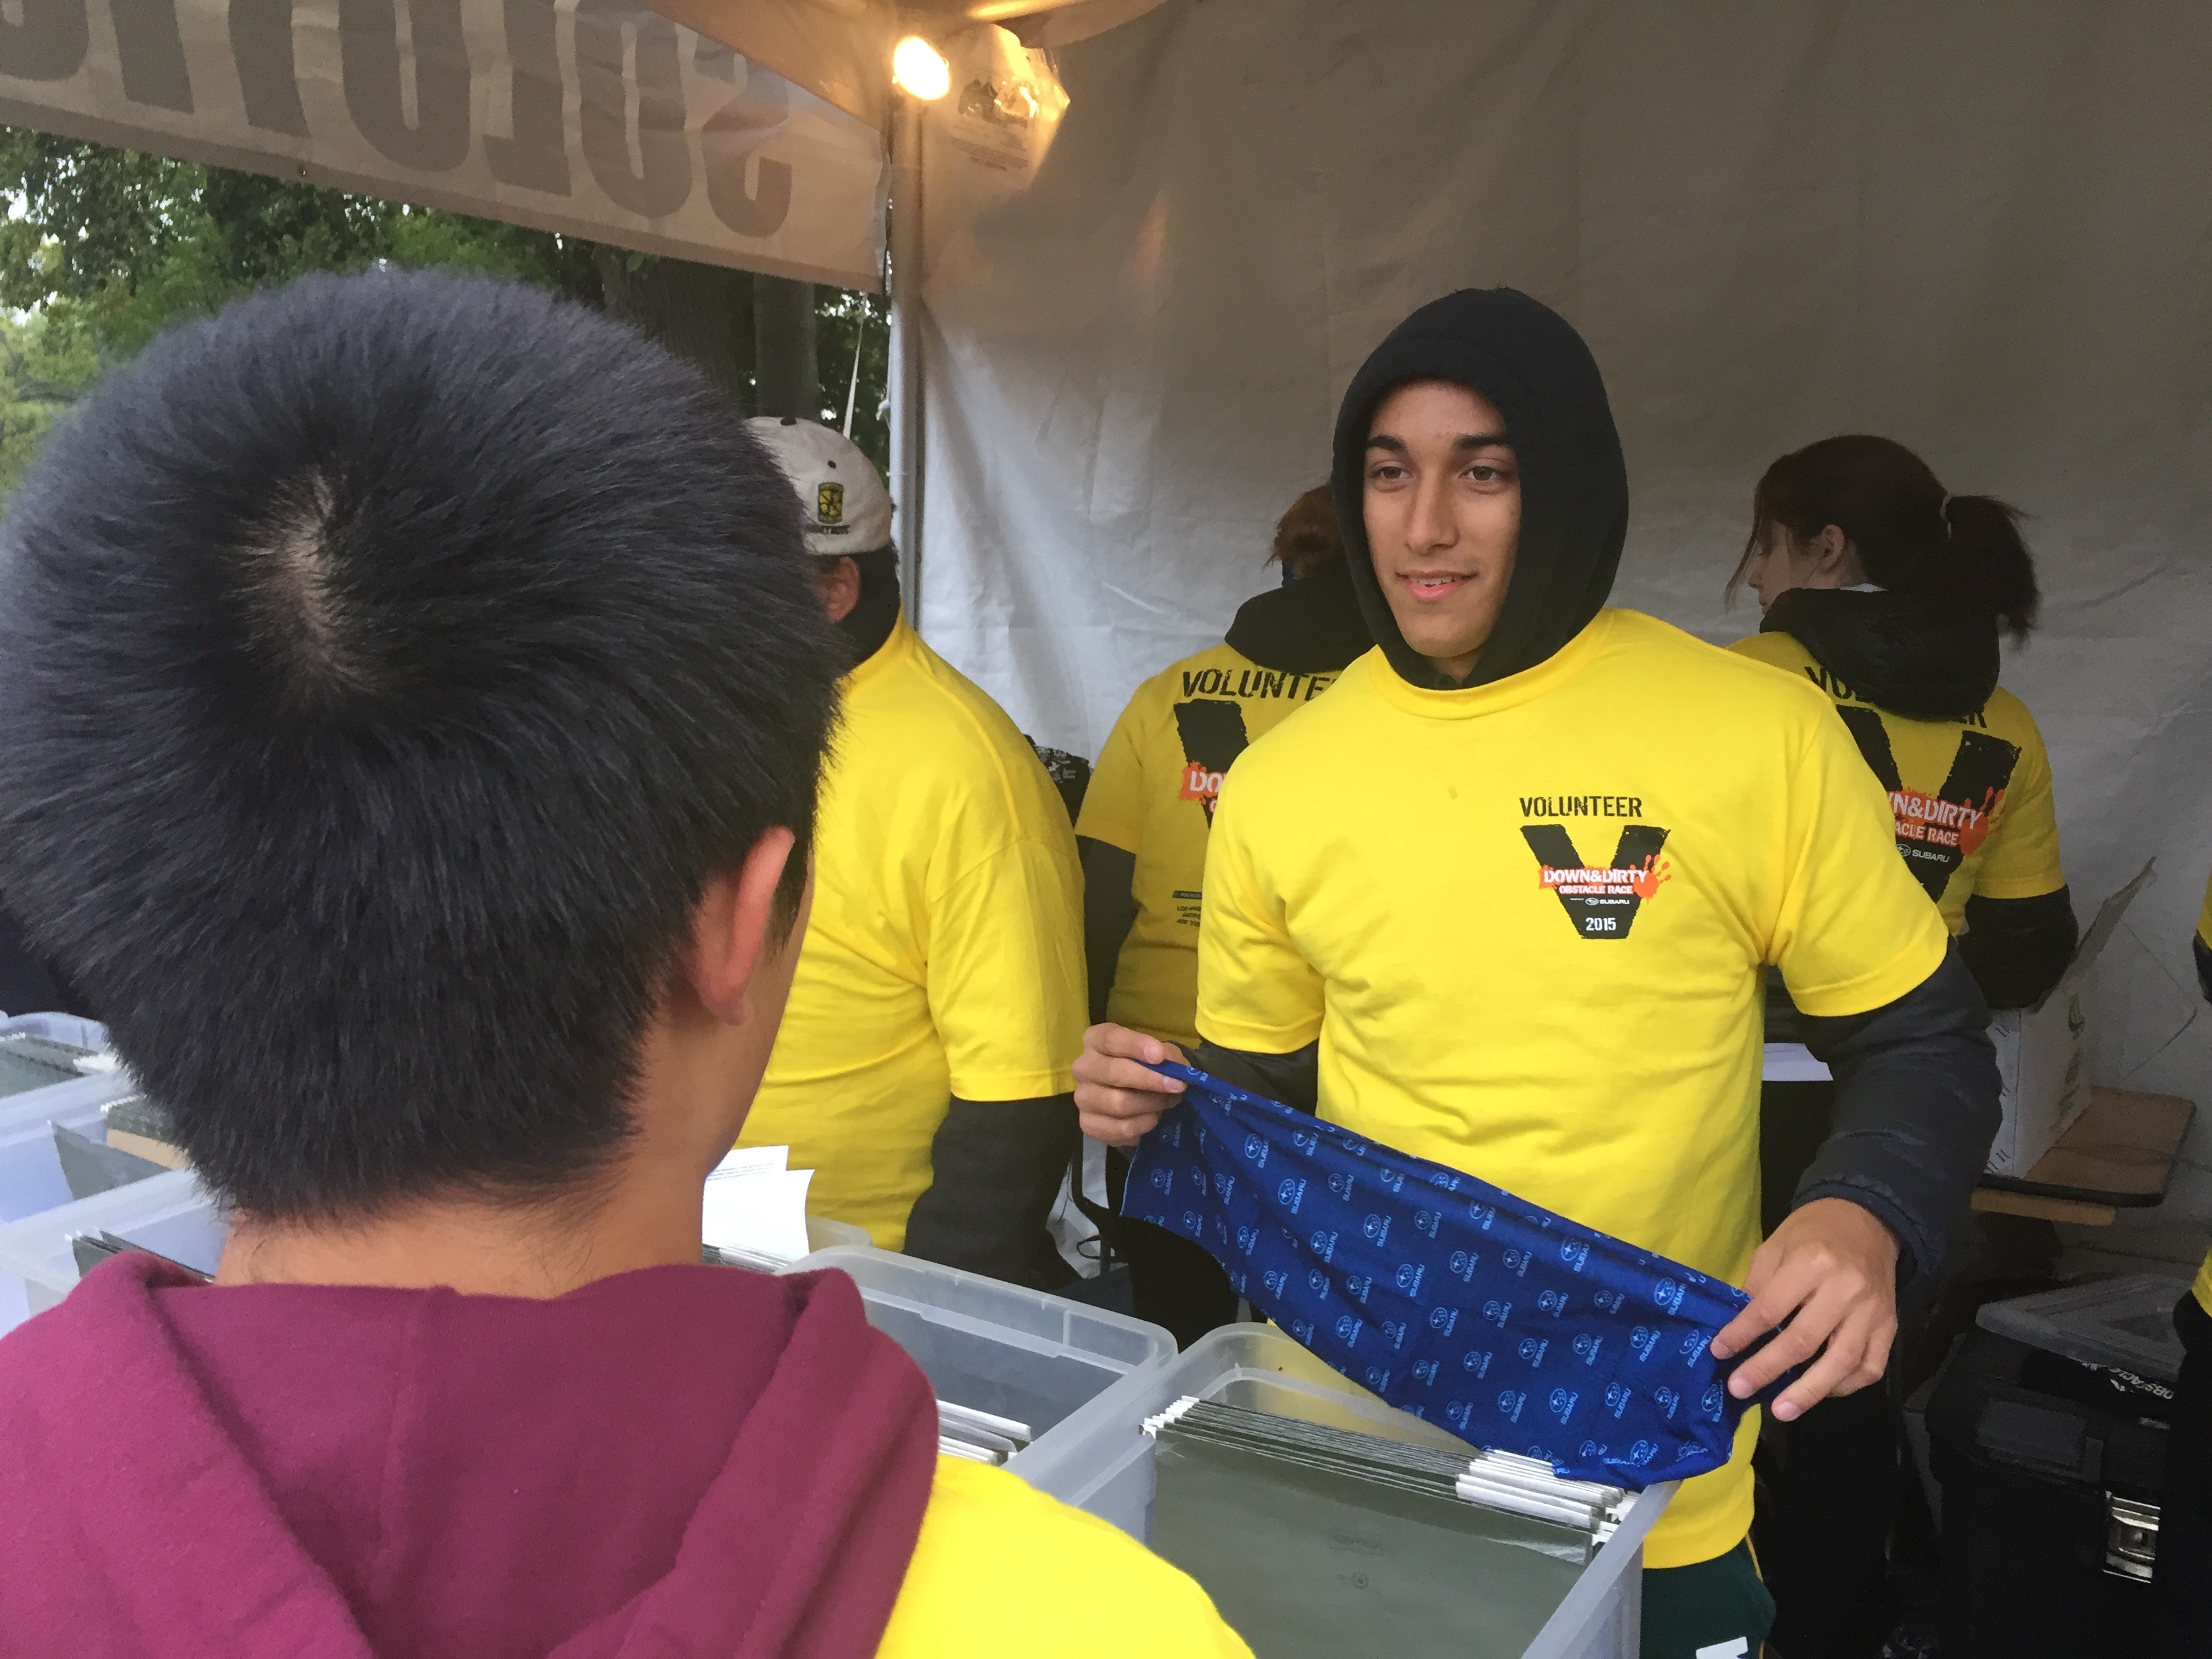 Air Force JROTC & Media Volunteer for Obstacle Race